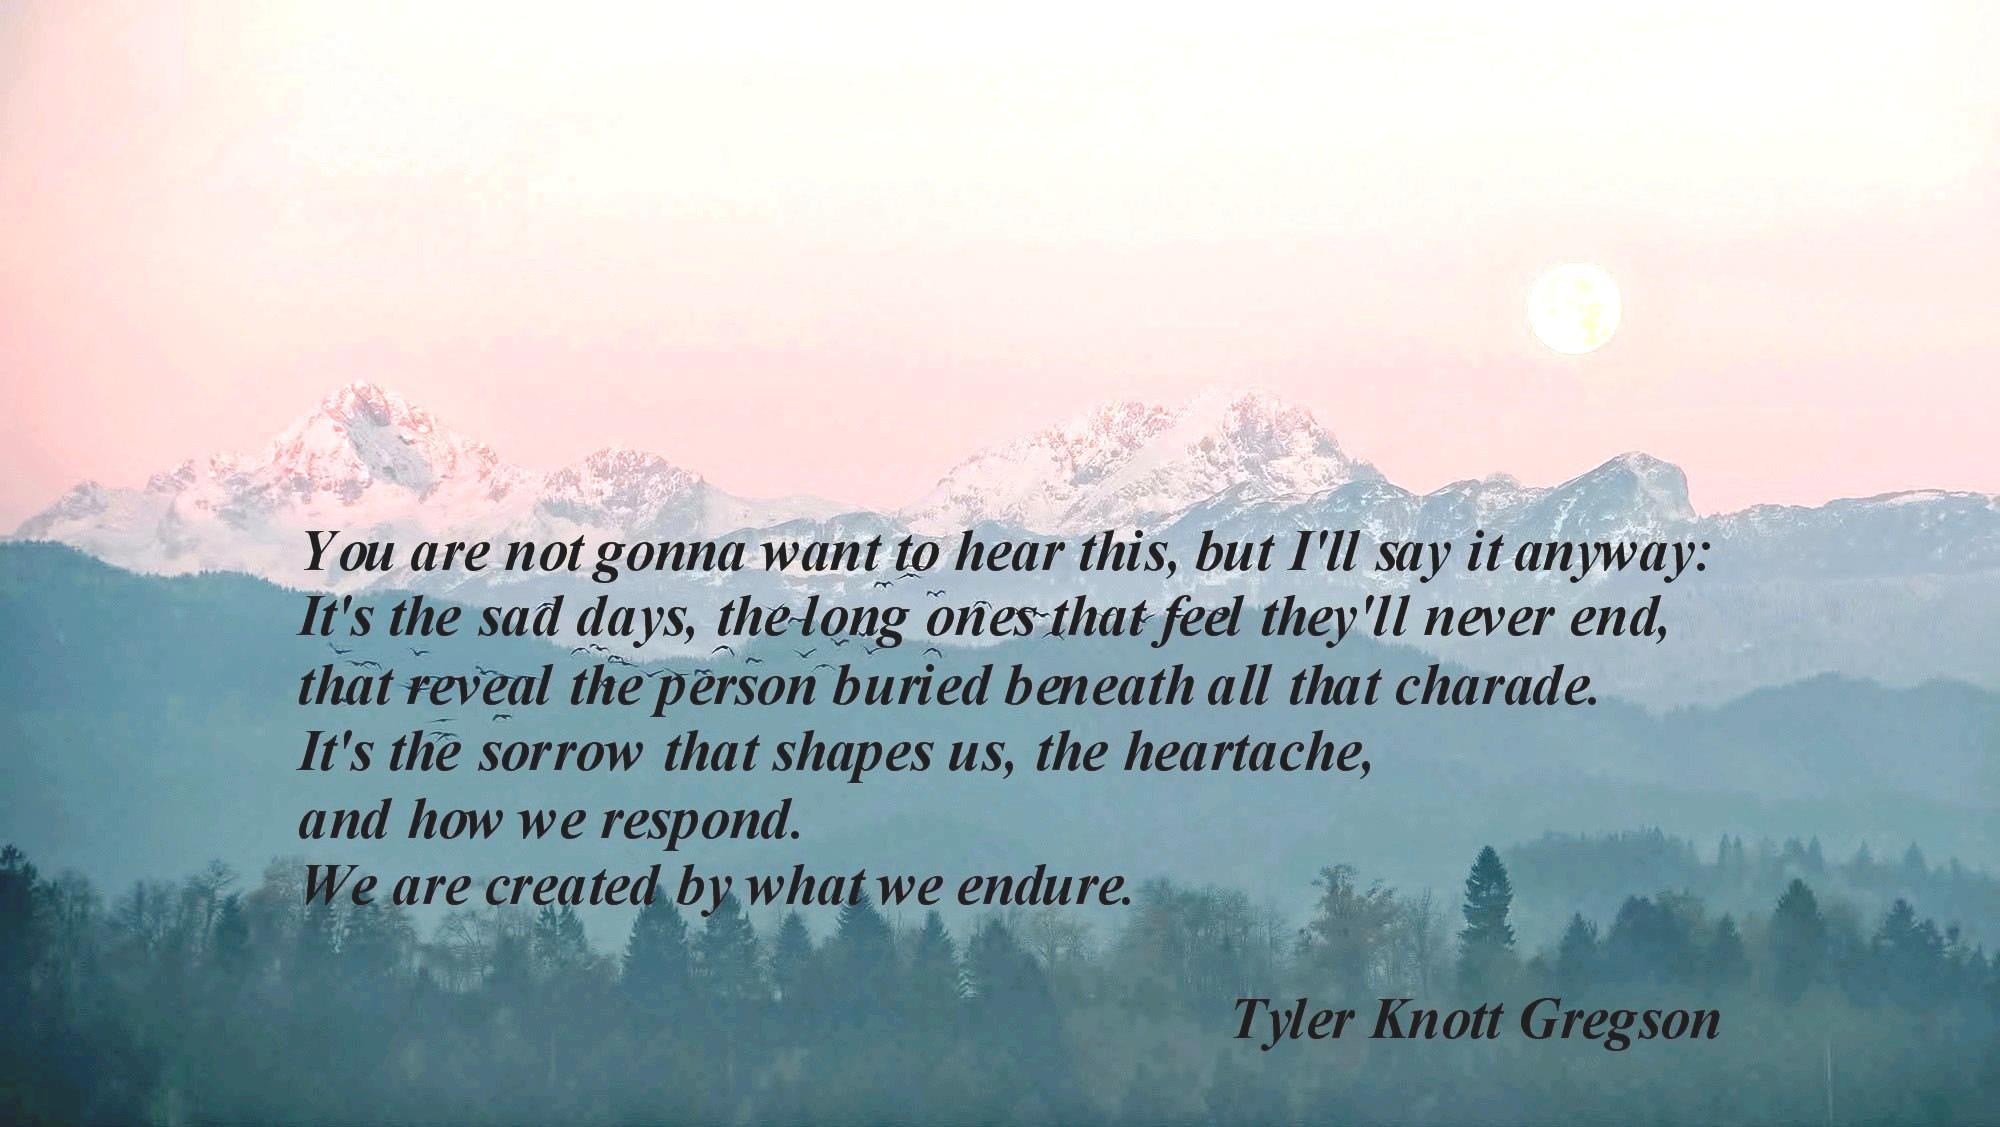 You are not gonna want to hear this, but I'll say it anyway… Tyler Knott Gregson (2000×1127)